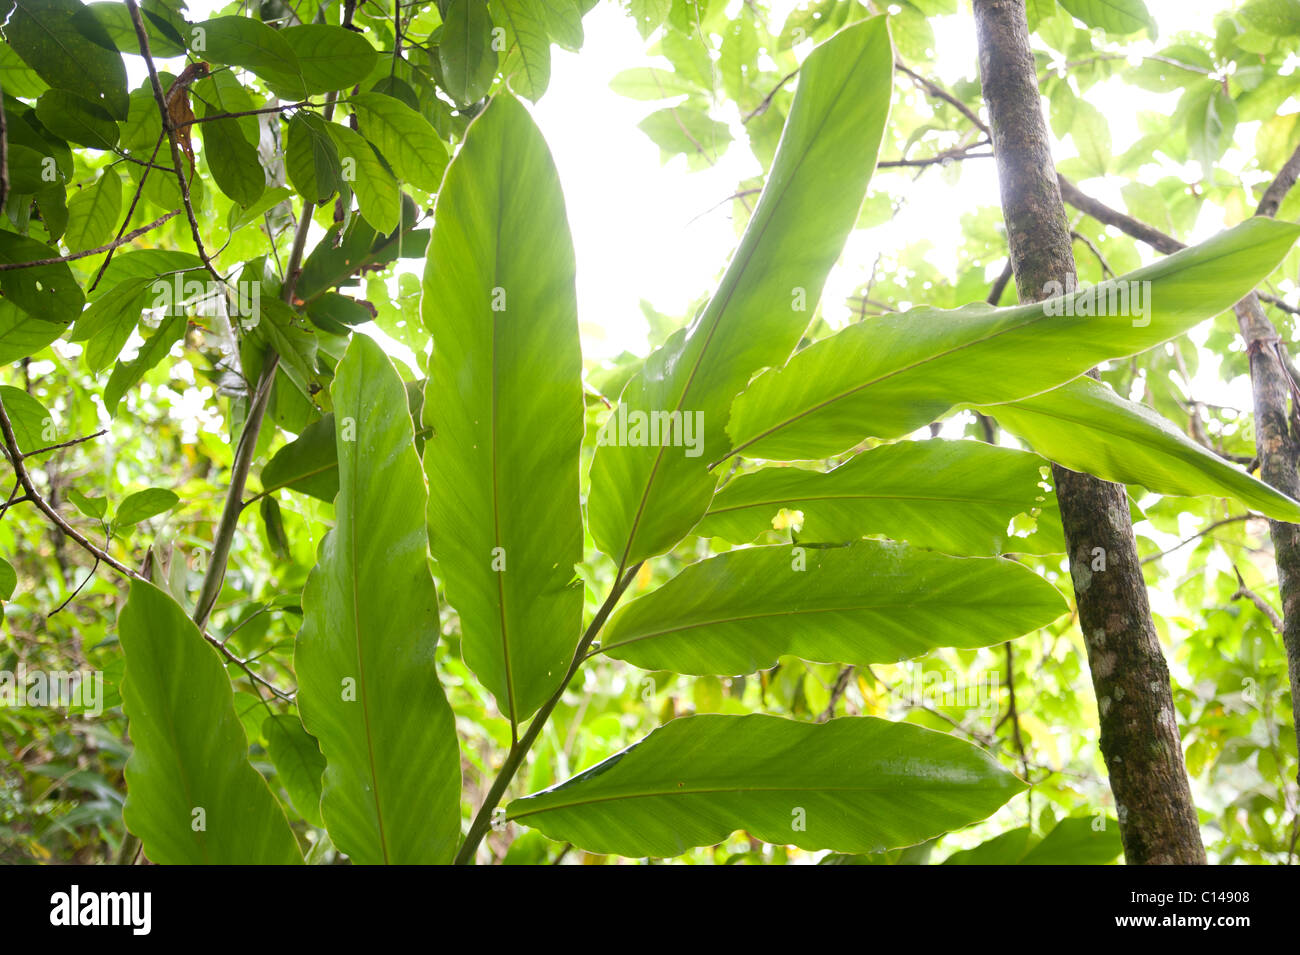 Leaves in Rainforest, Amazon, Jungle, - Stock Image